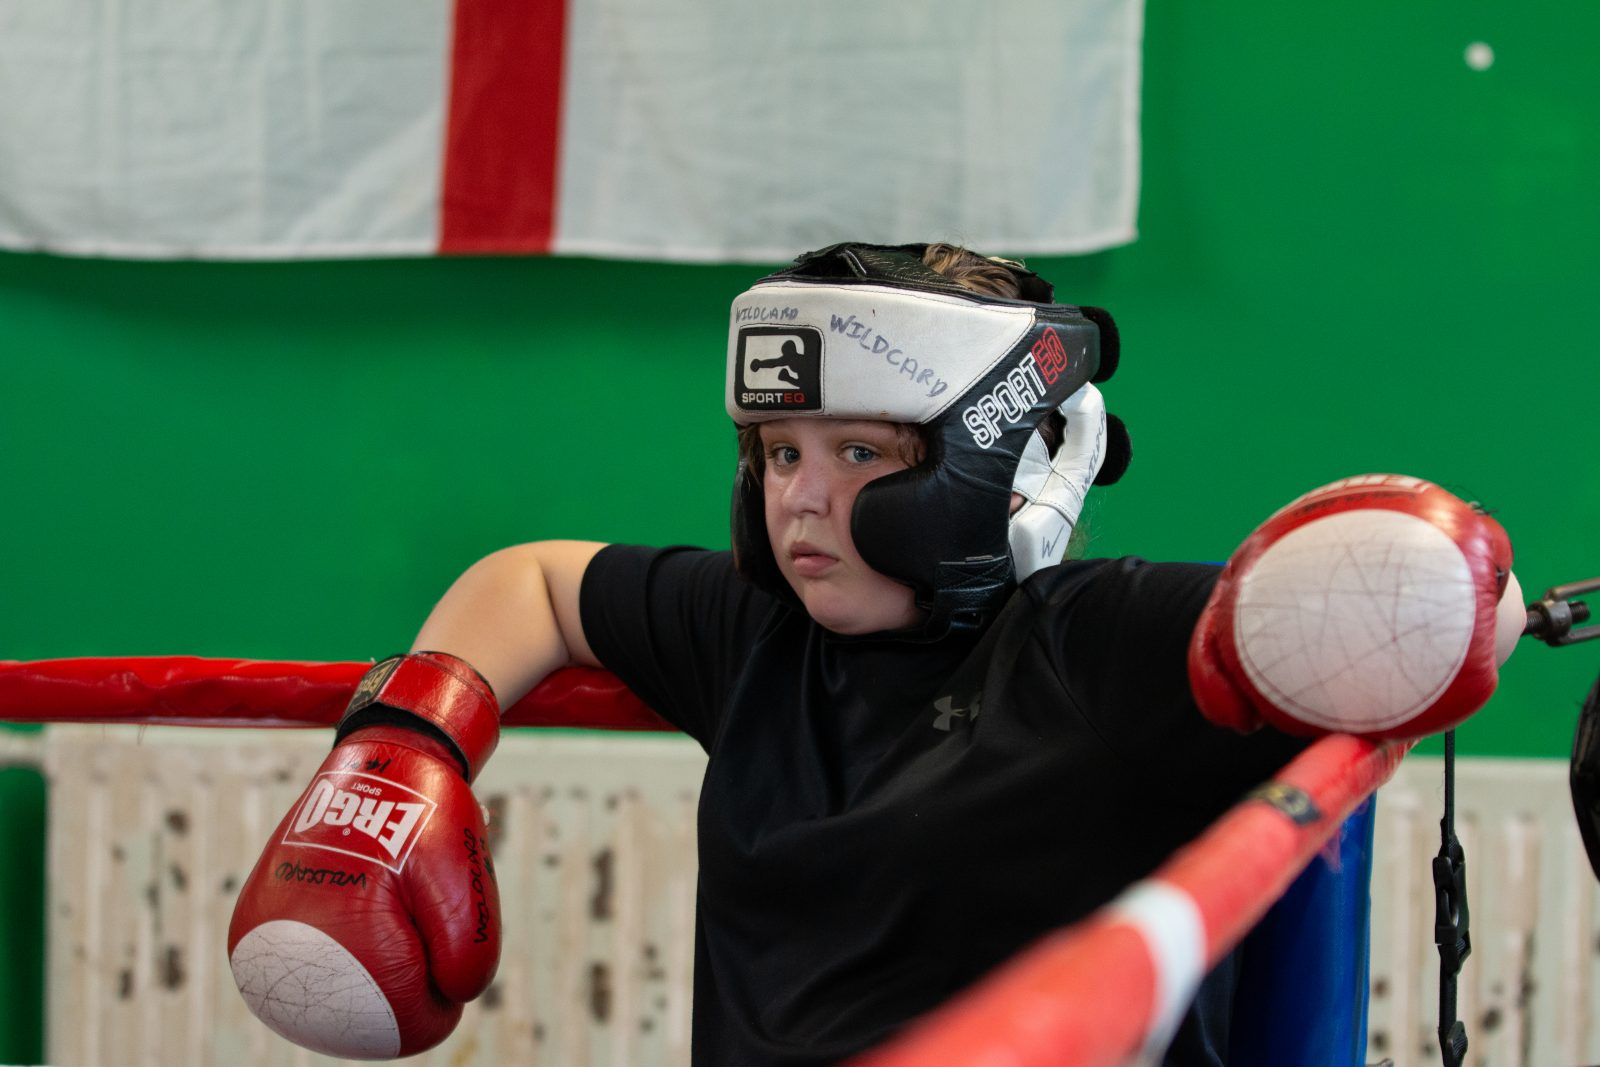 A young person leans against the inside corner of a boxing ring. They are wearing a black and white headguards and red and white boxing gloves.